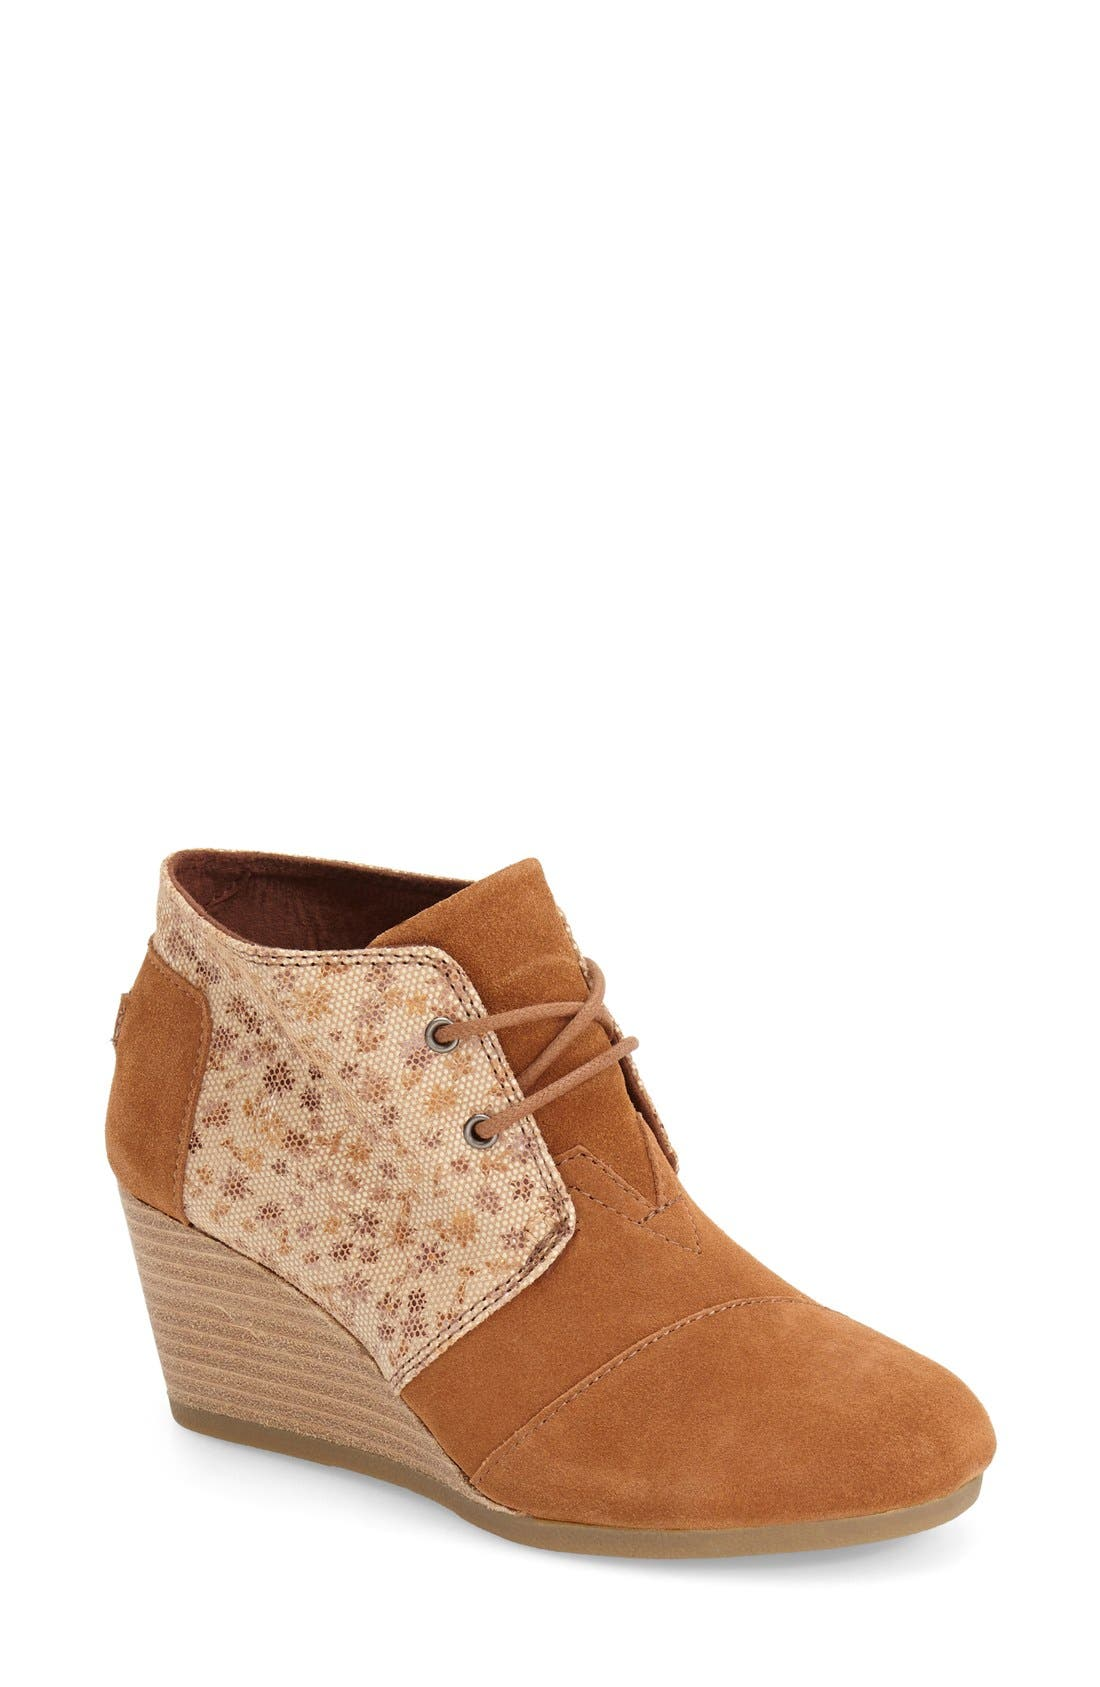 Main Image - TOMS 'Desert' Printed Wedge Bootie (Women)